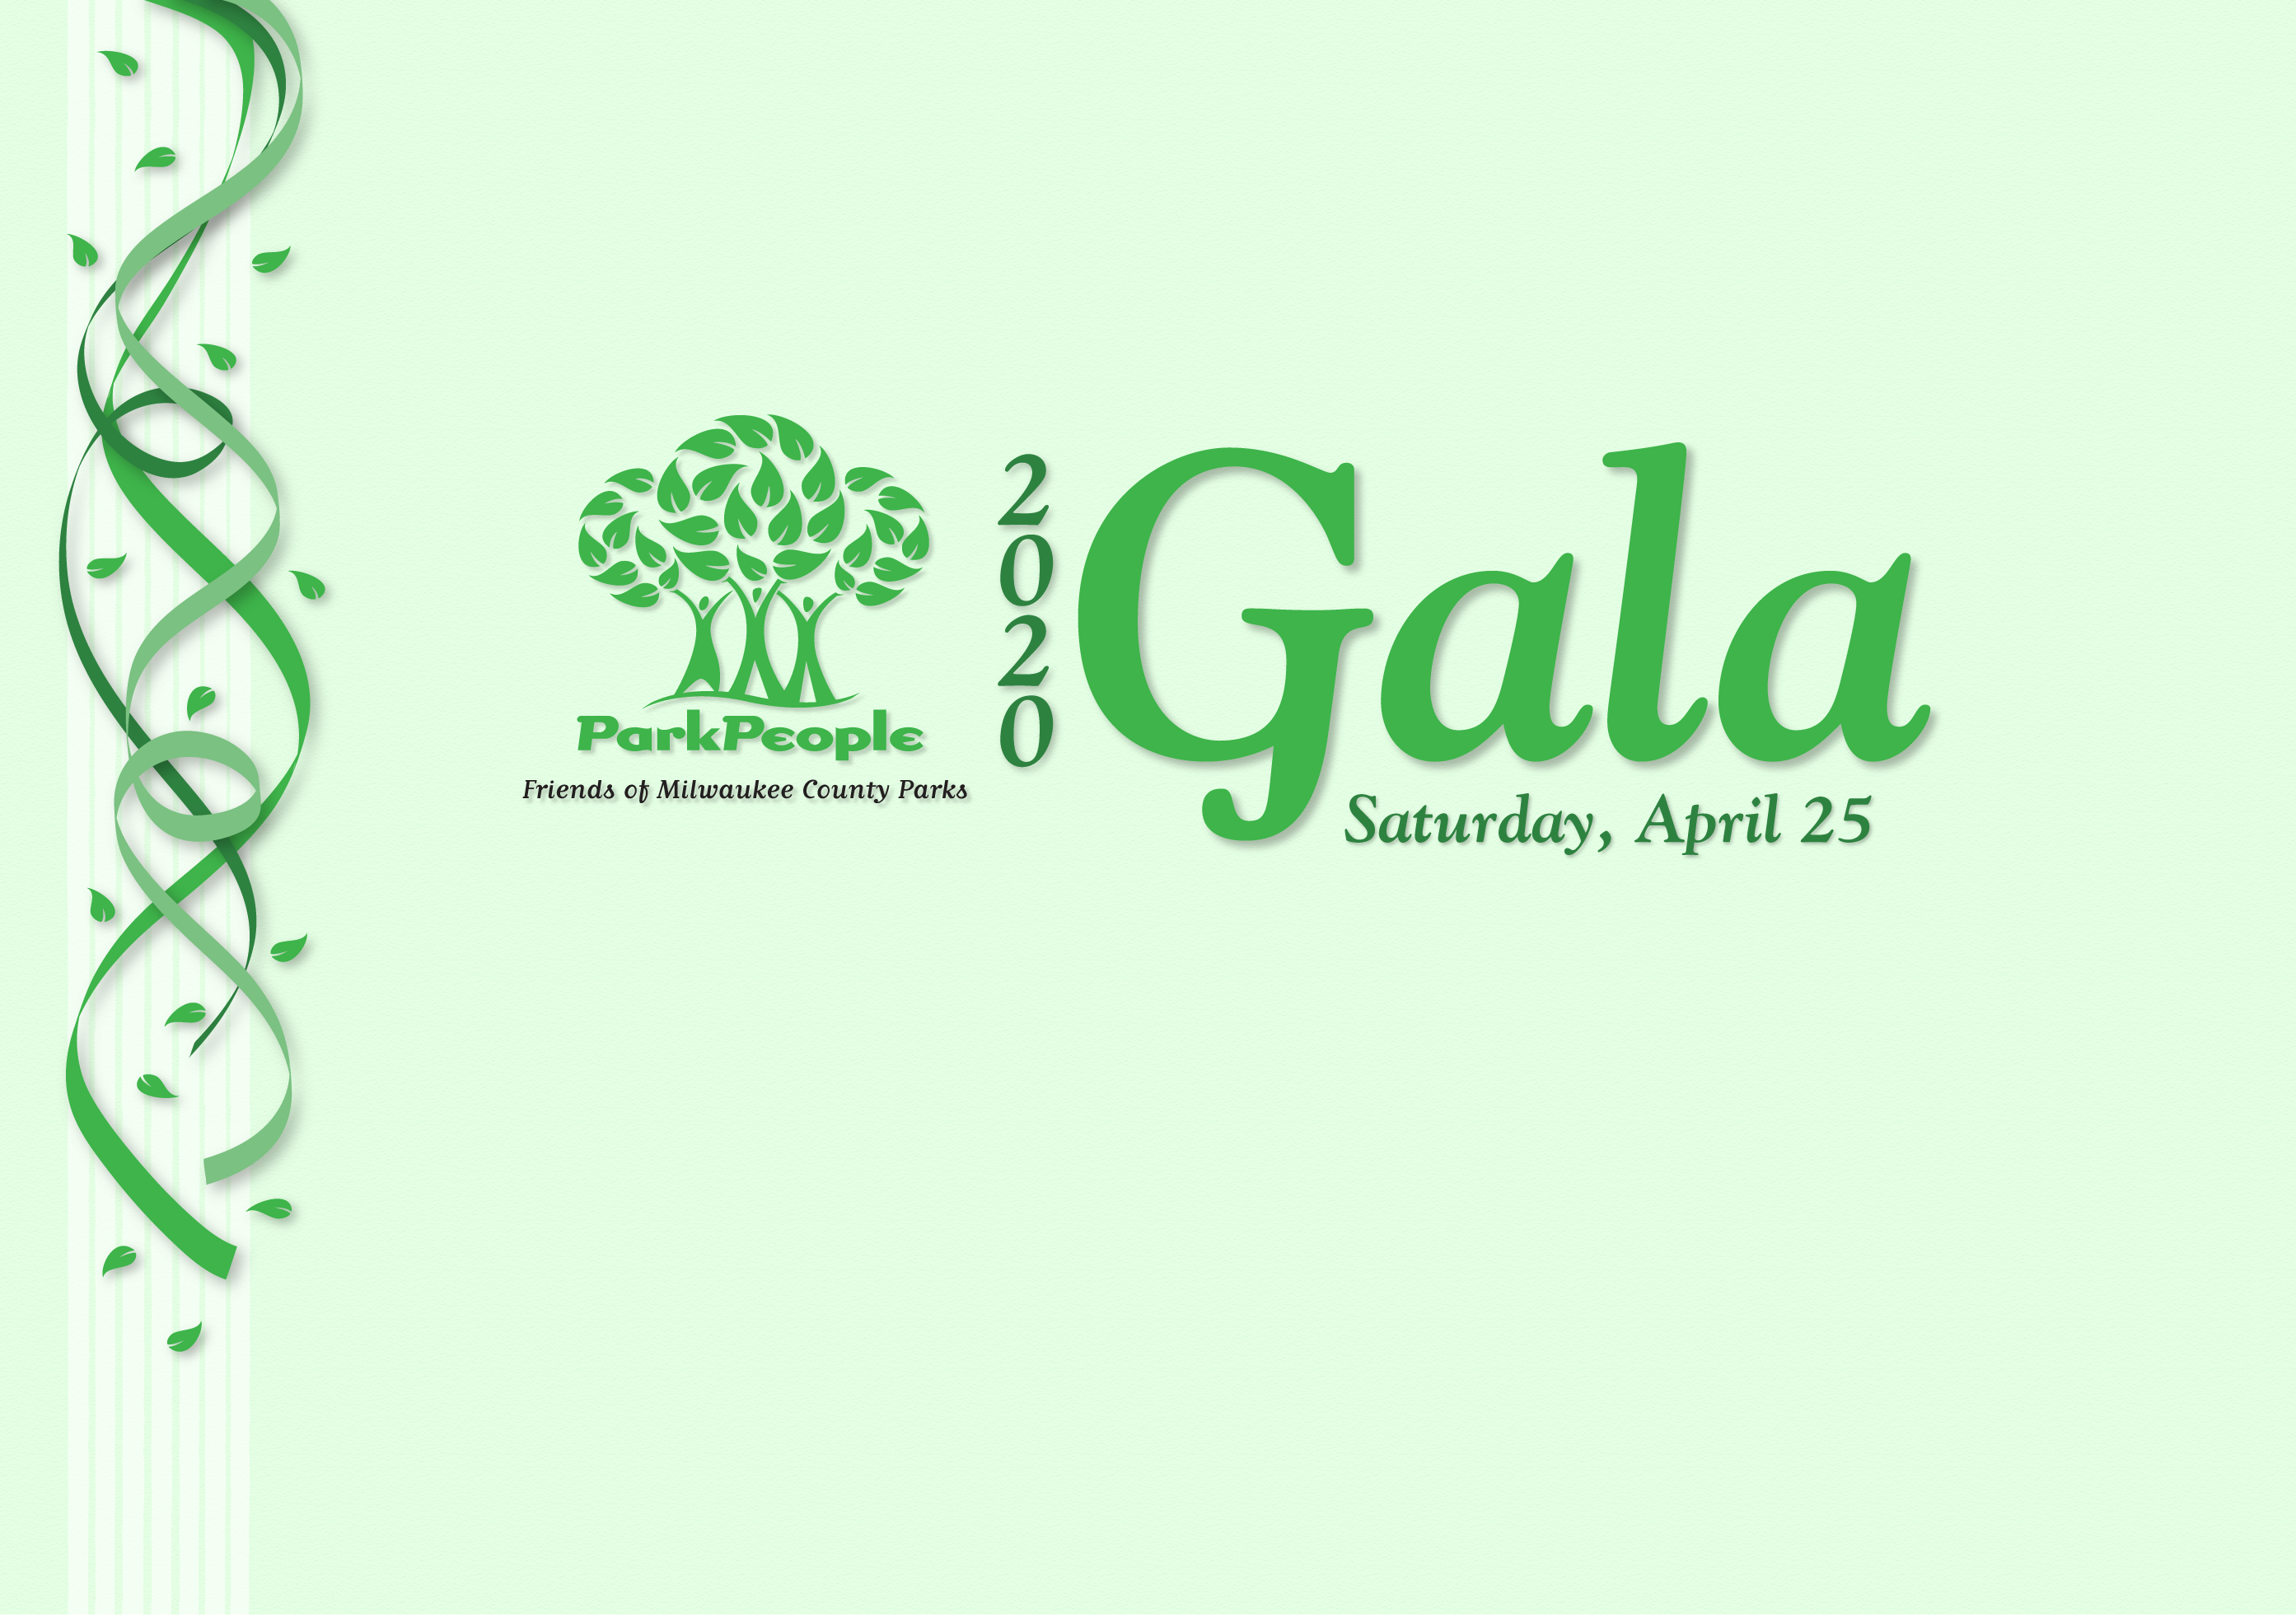 Graphic for The Park People 2020 Gala